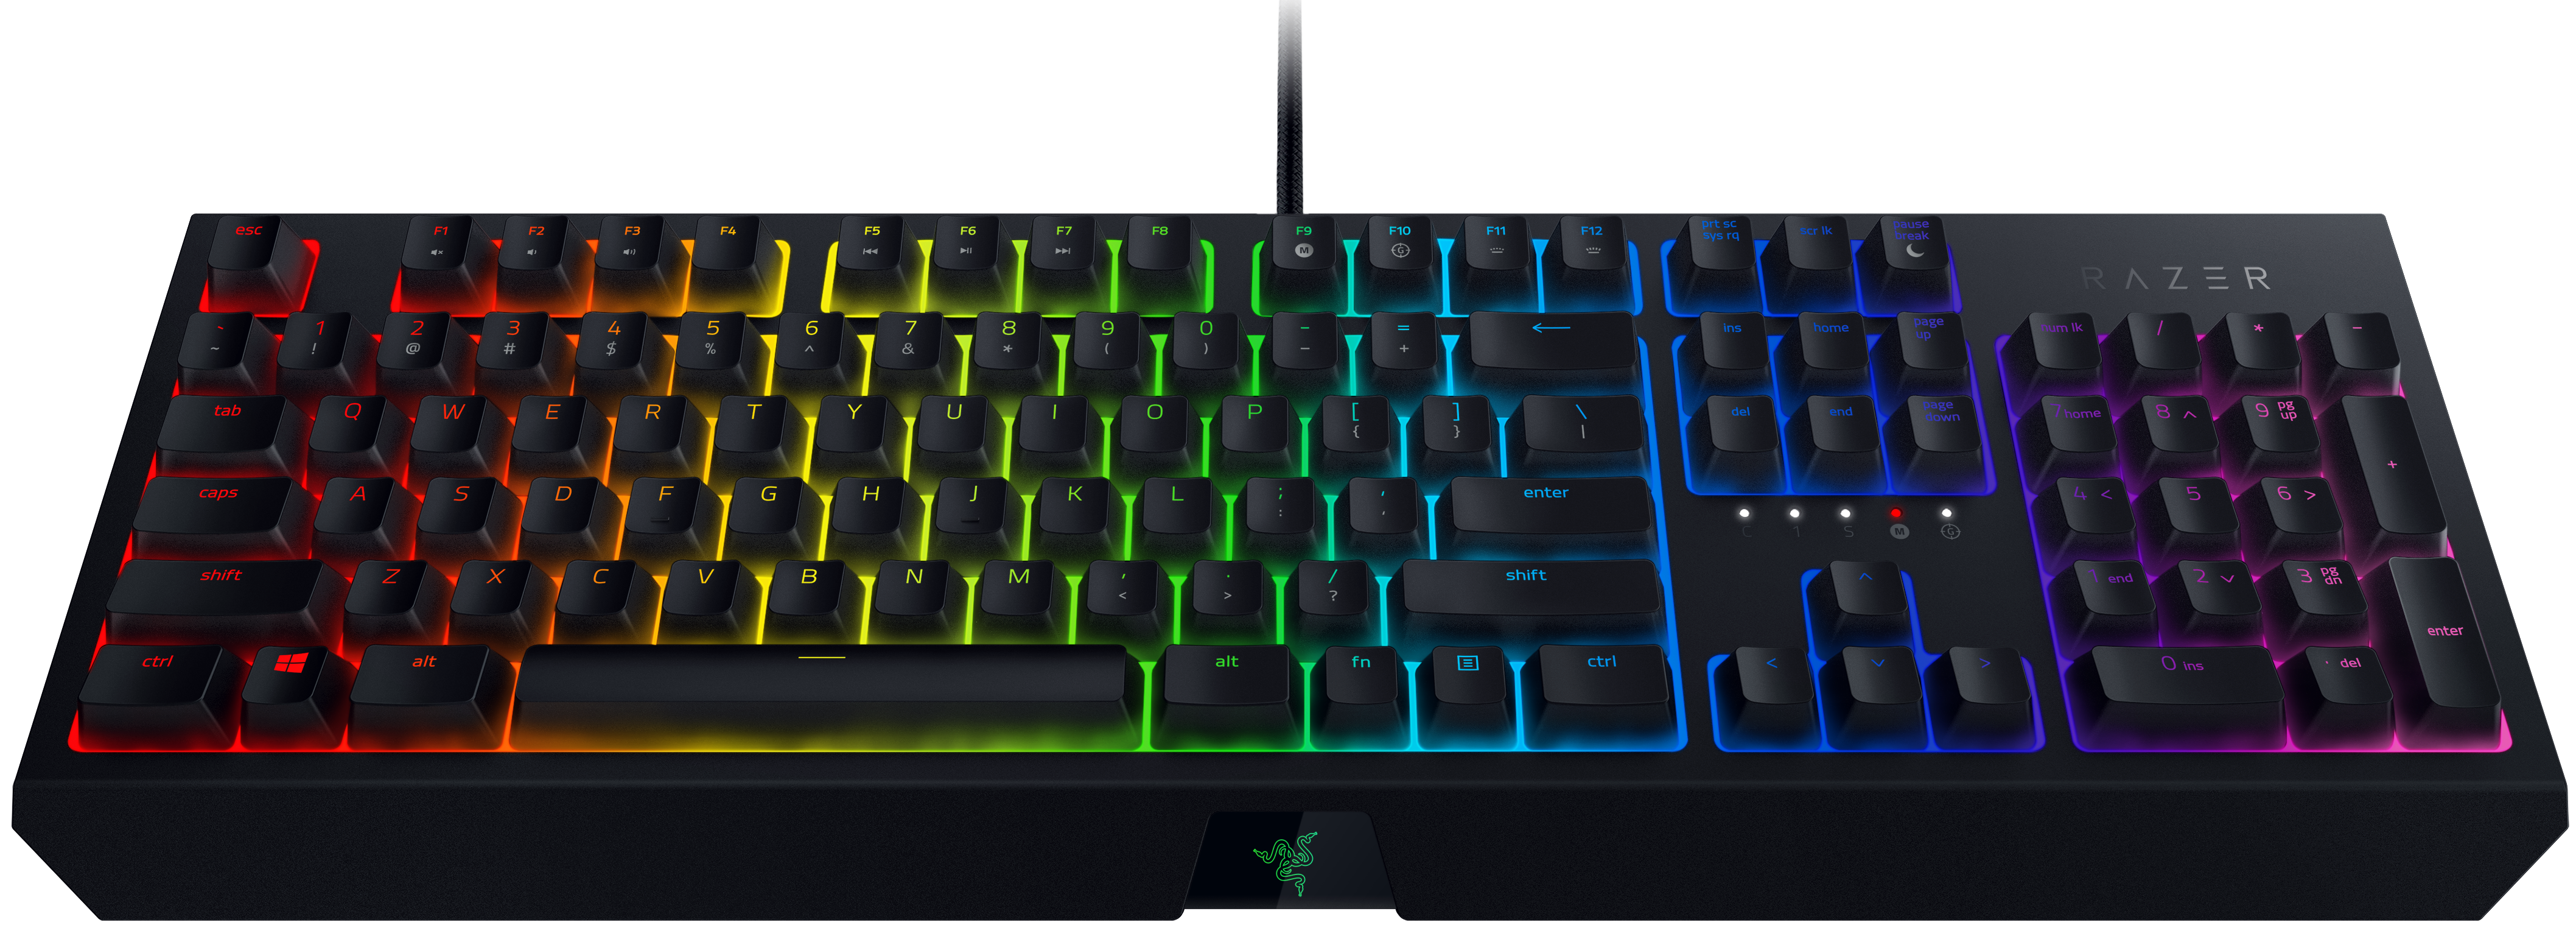 Механична клавиатура Razer BlackWidow - 4